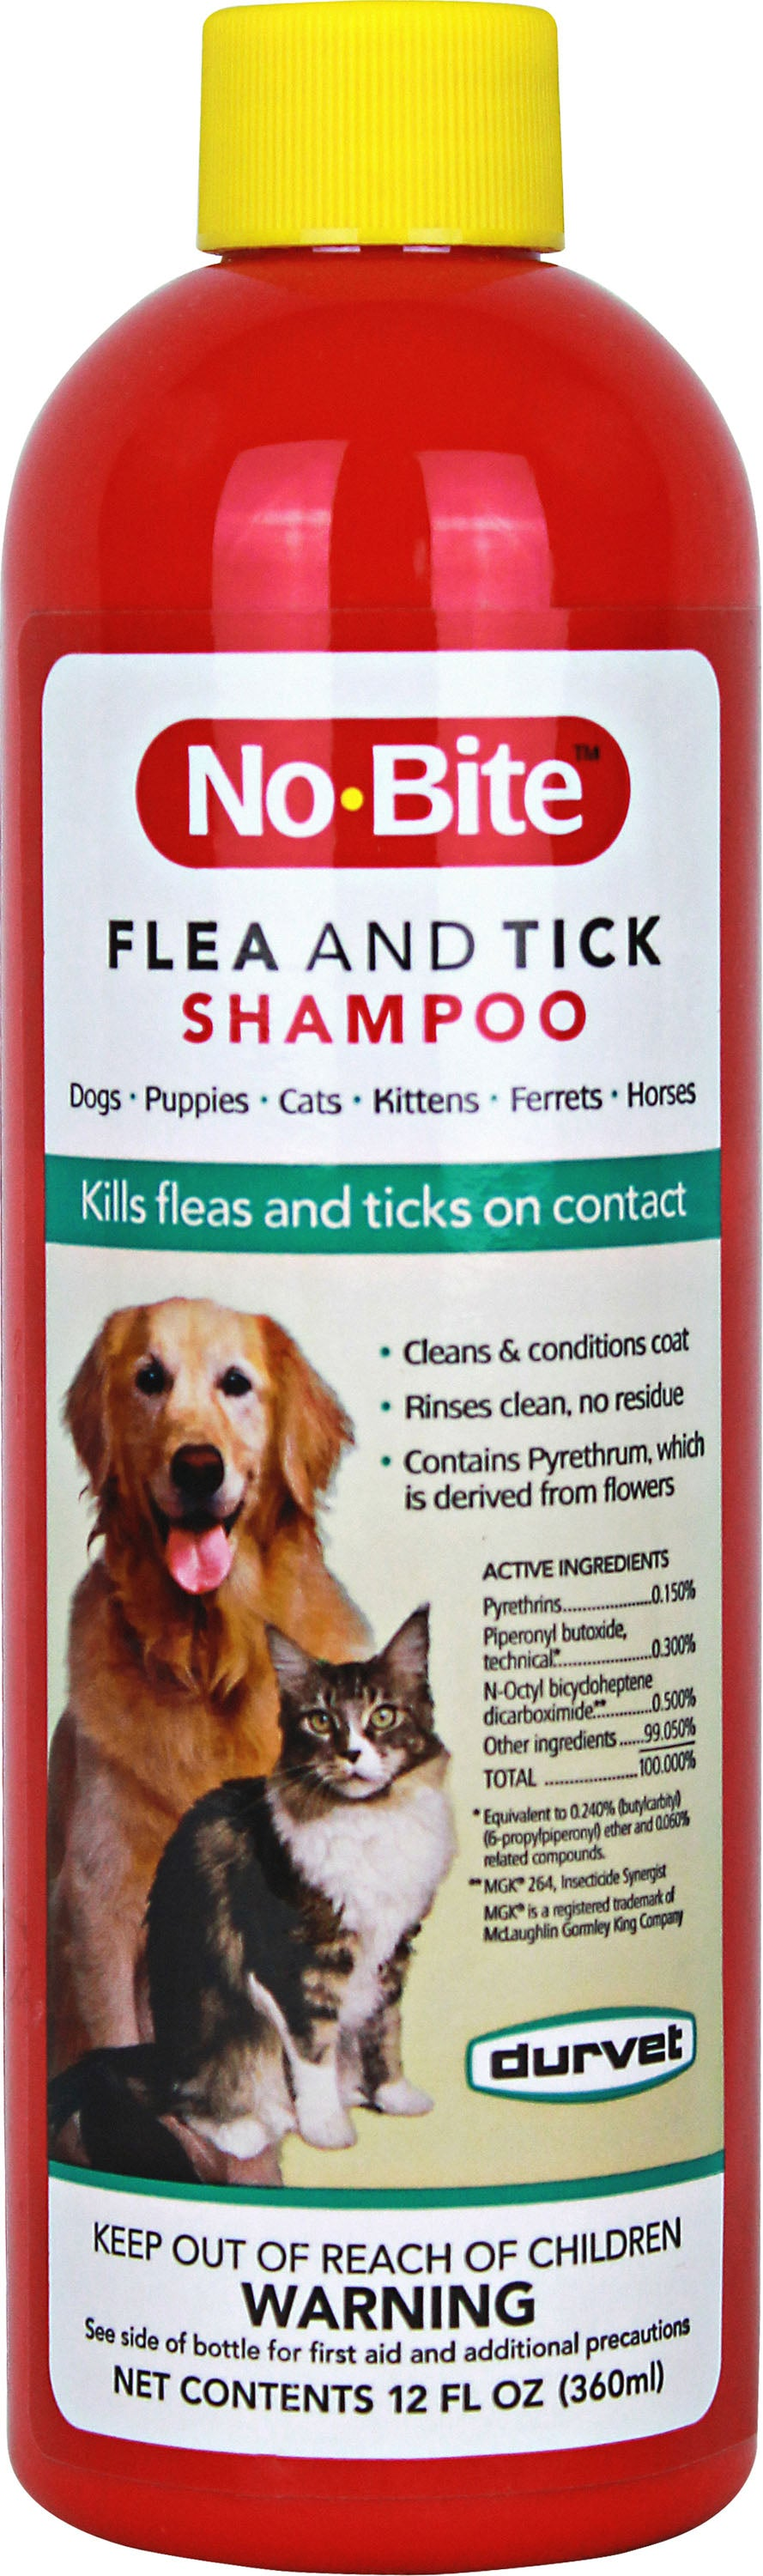 No-bite Cat & Dog Flea & Tick Shampoo